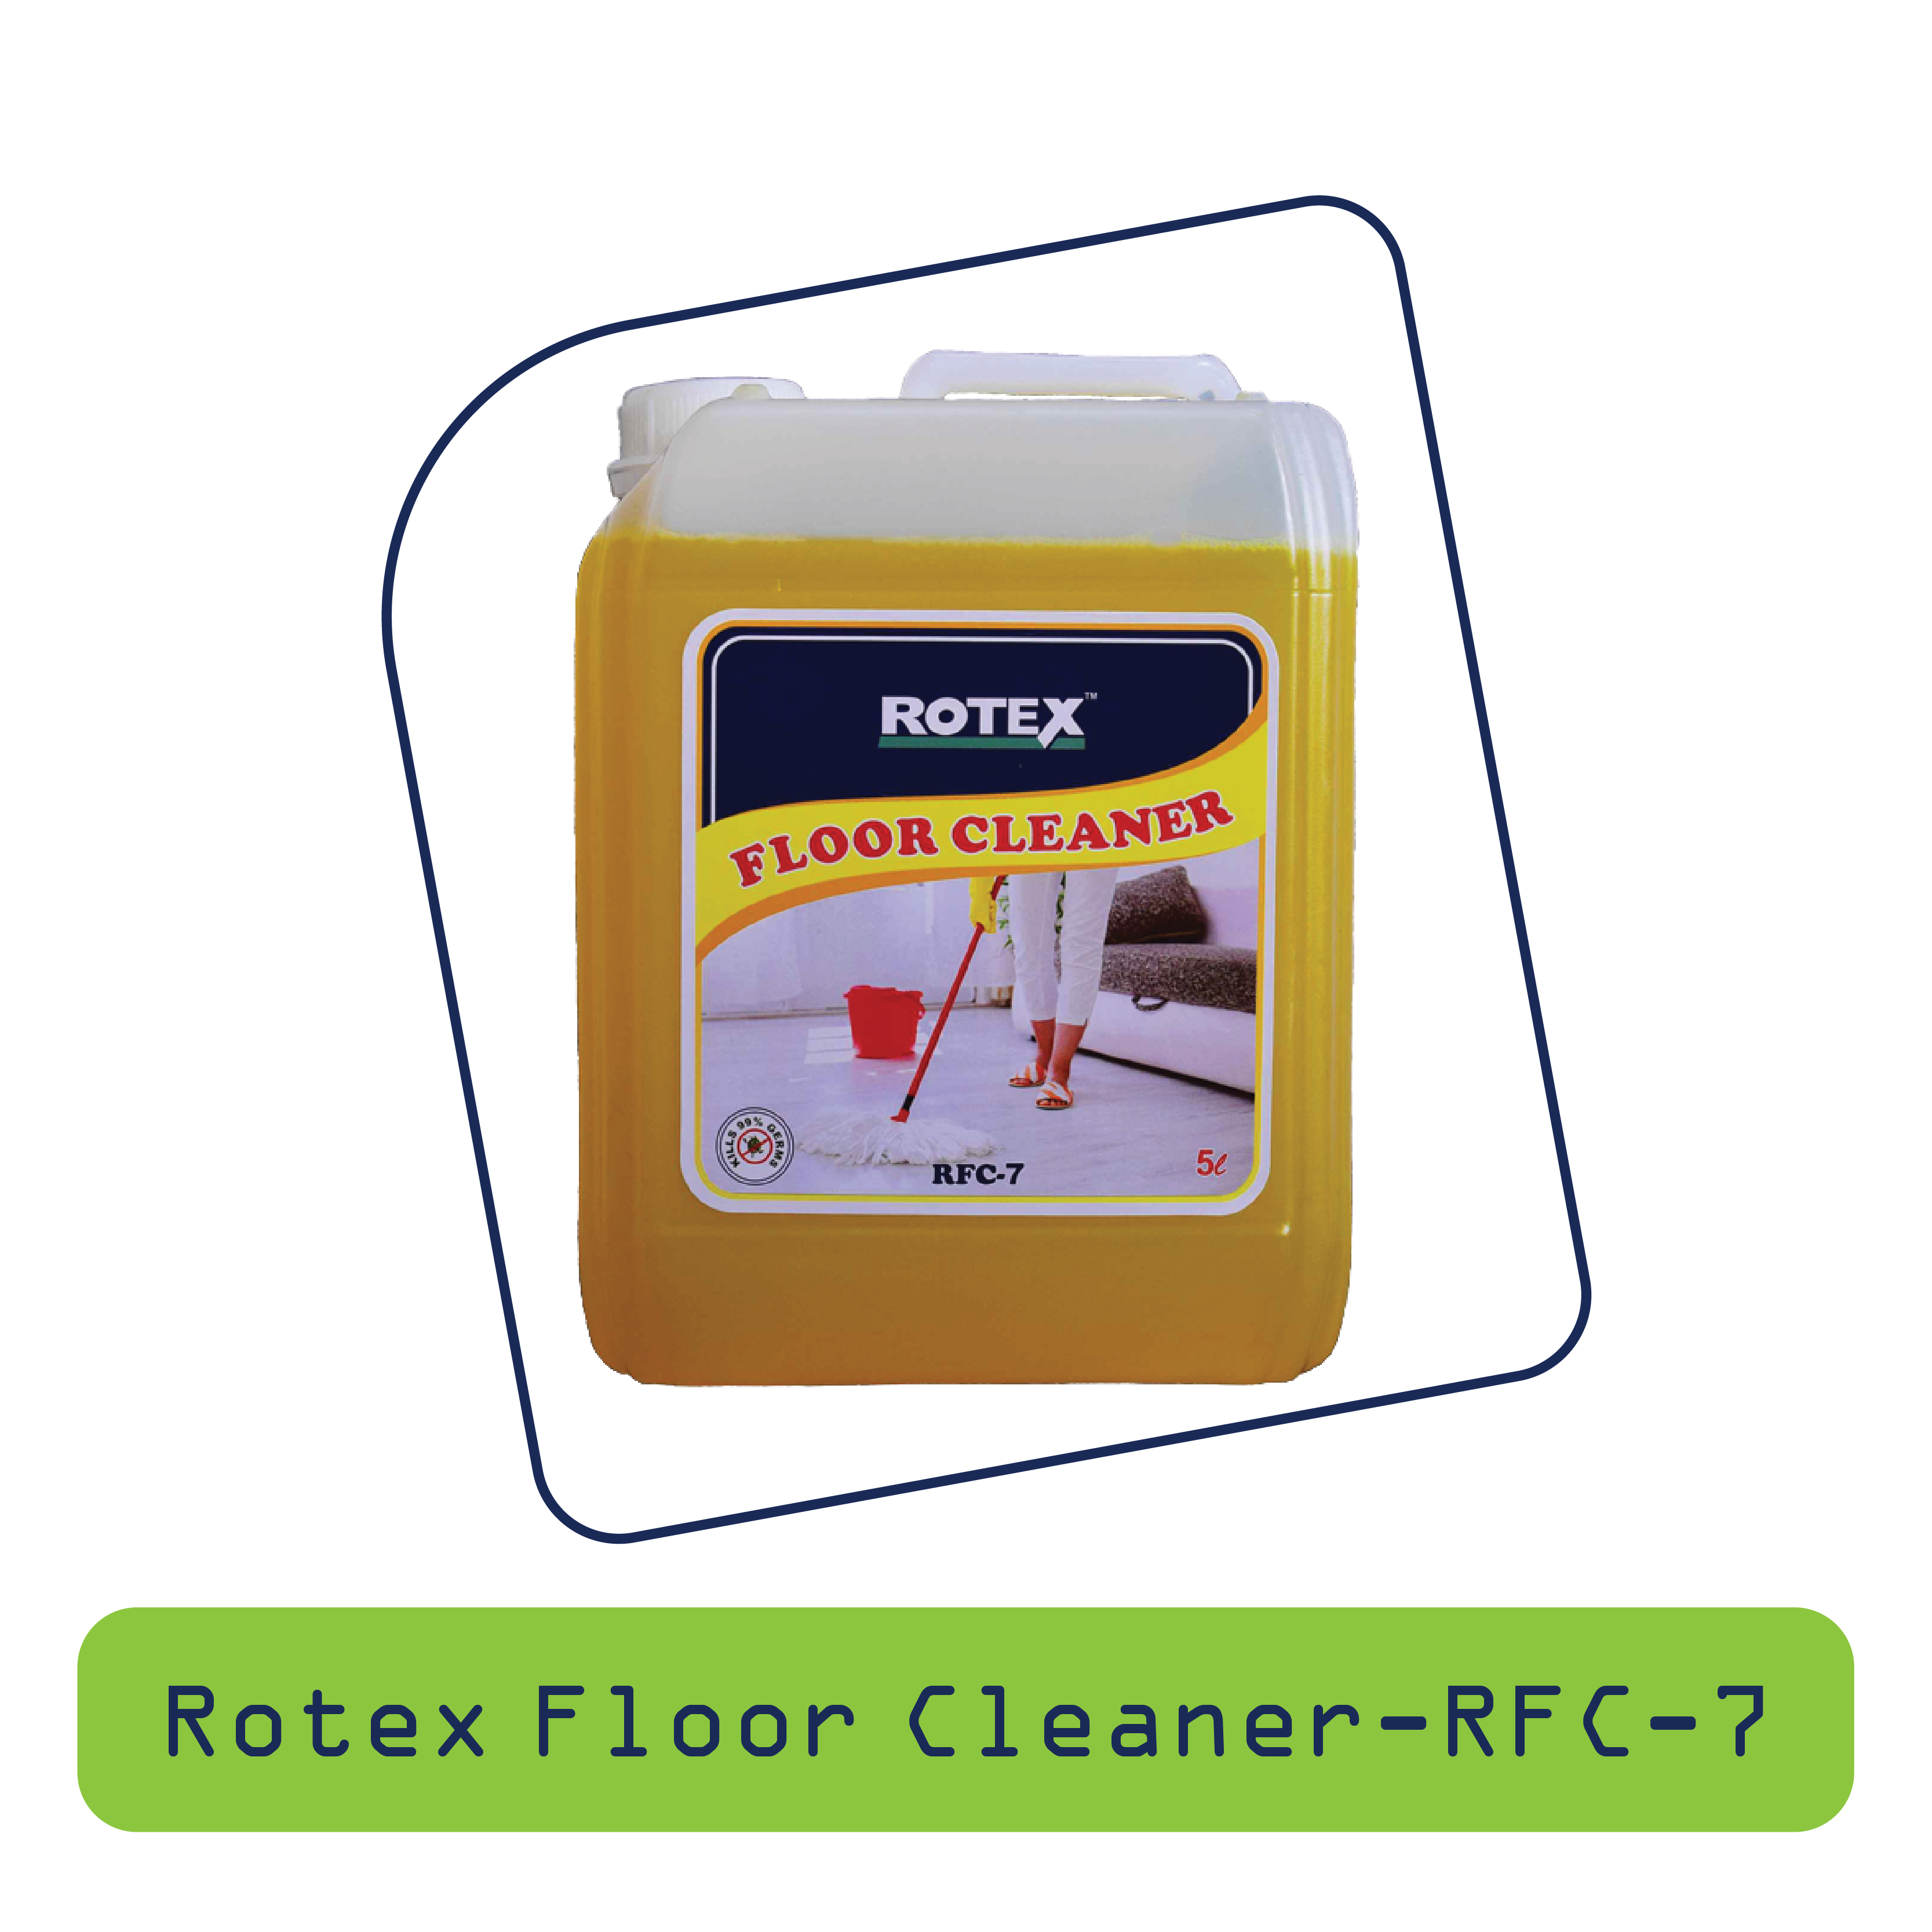 Rotex Floor Cleaner RFC-7